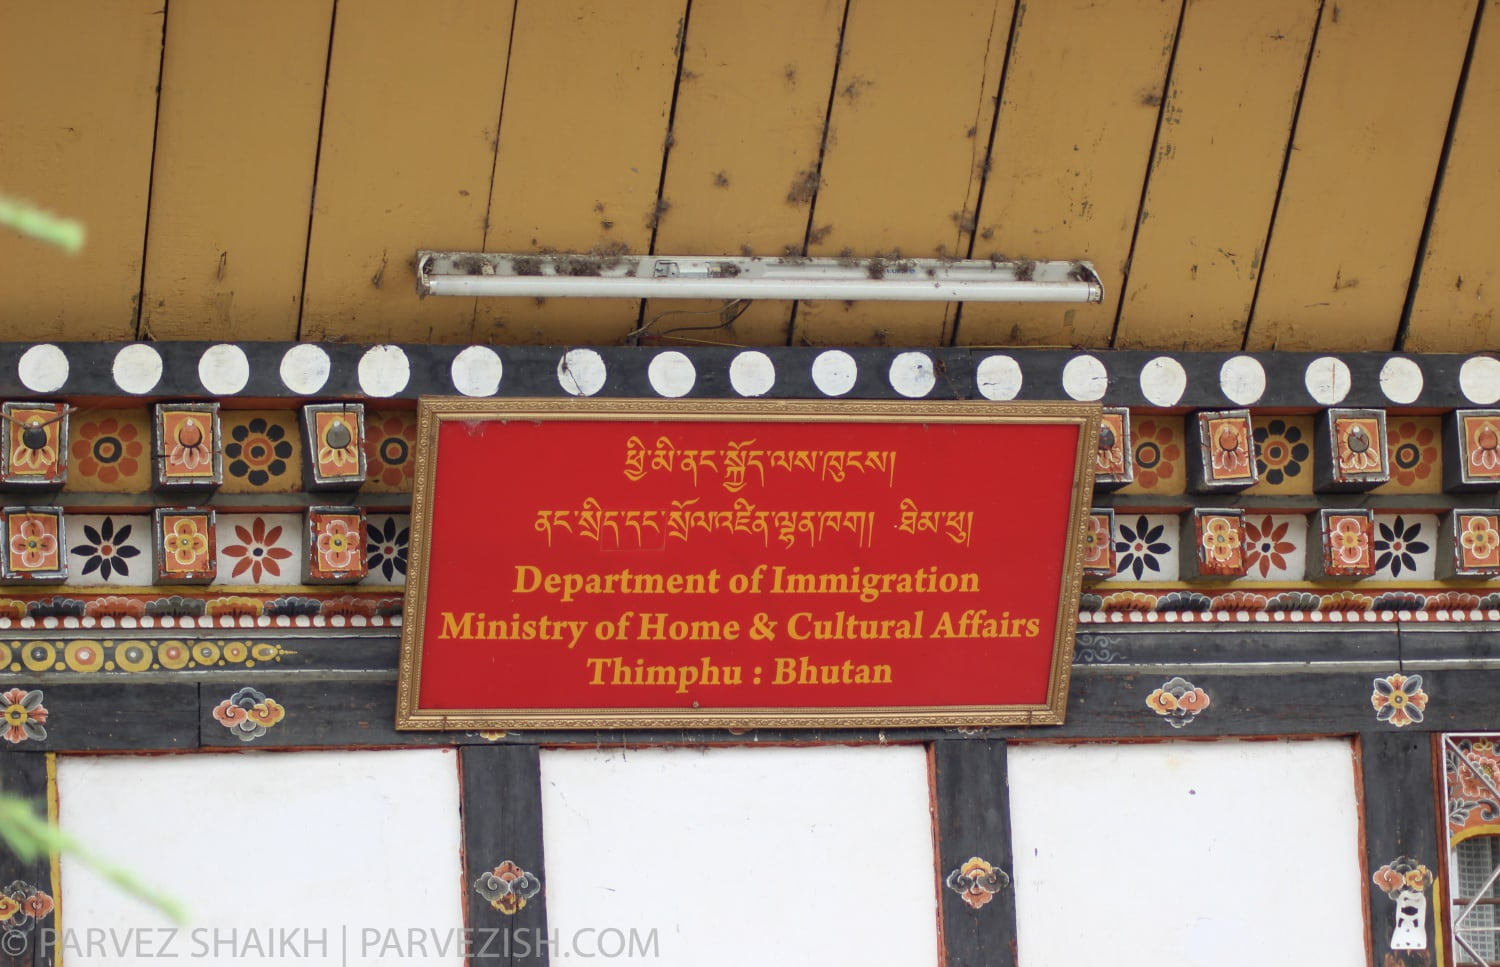 Bhutan Department of Immigration, Thimphu